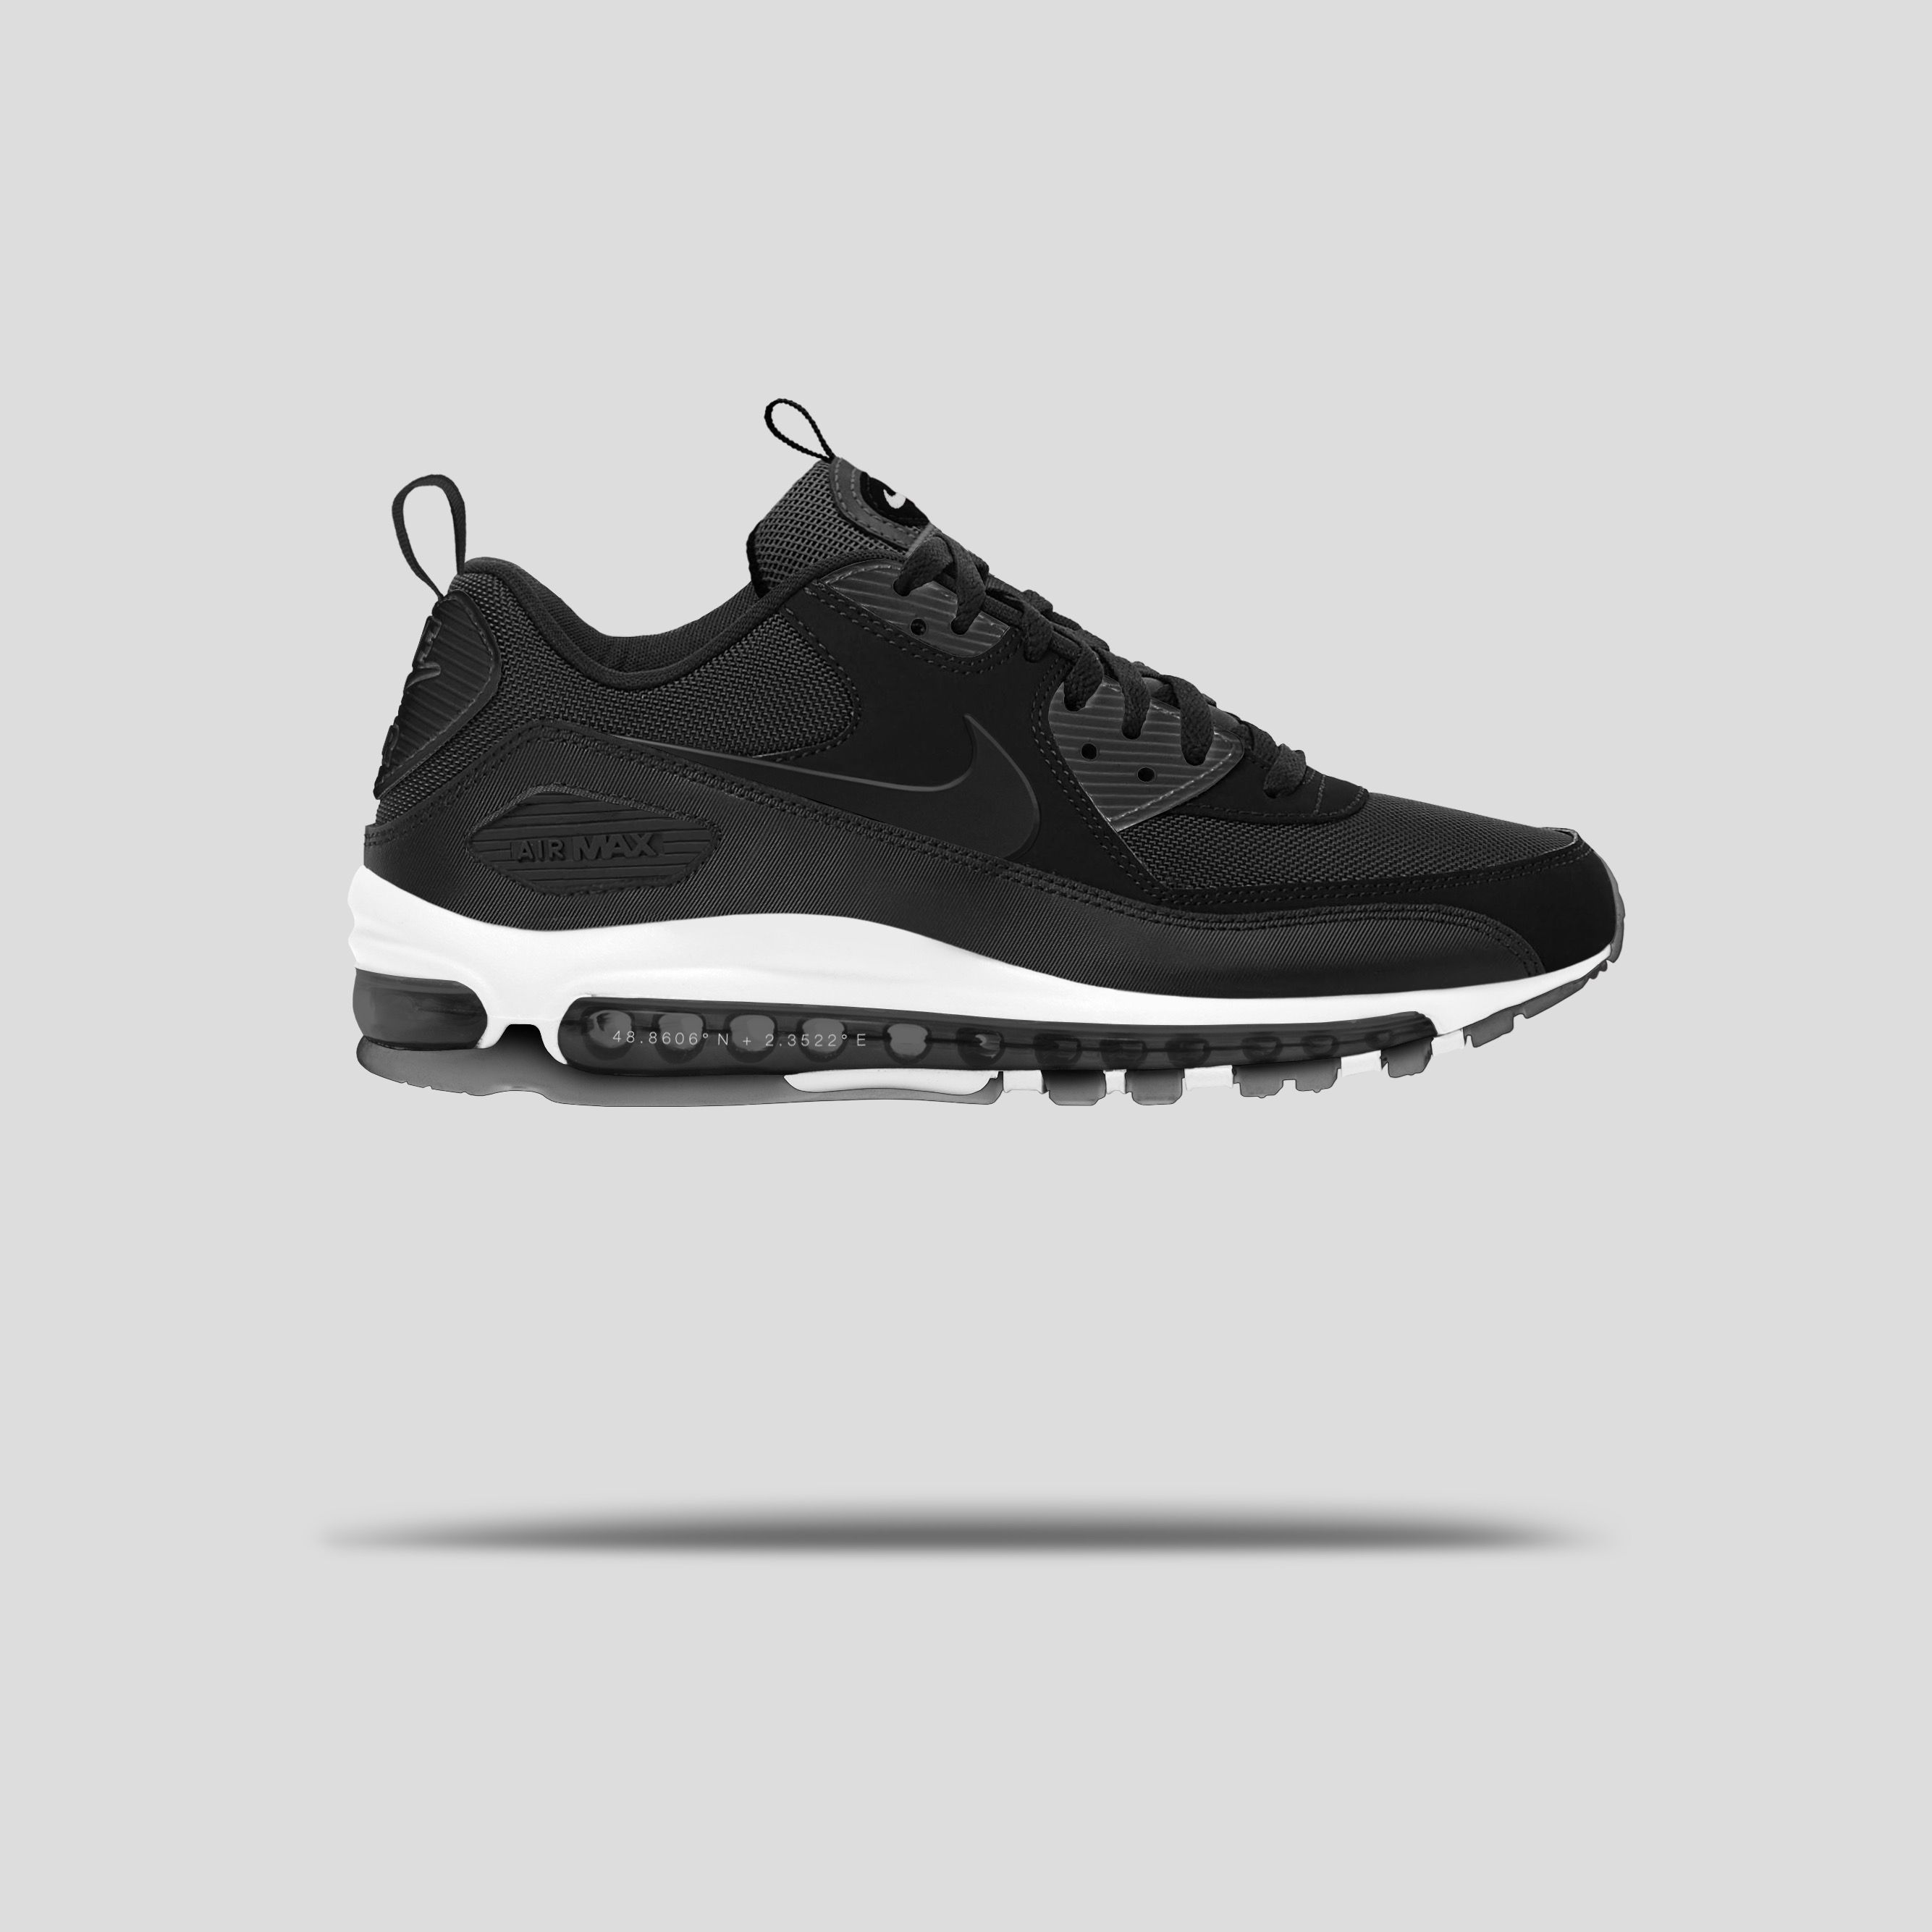 Nike Vote Forward – Minimalist Air Max Concept by Clément Balavoine